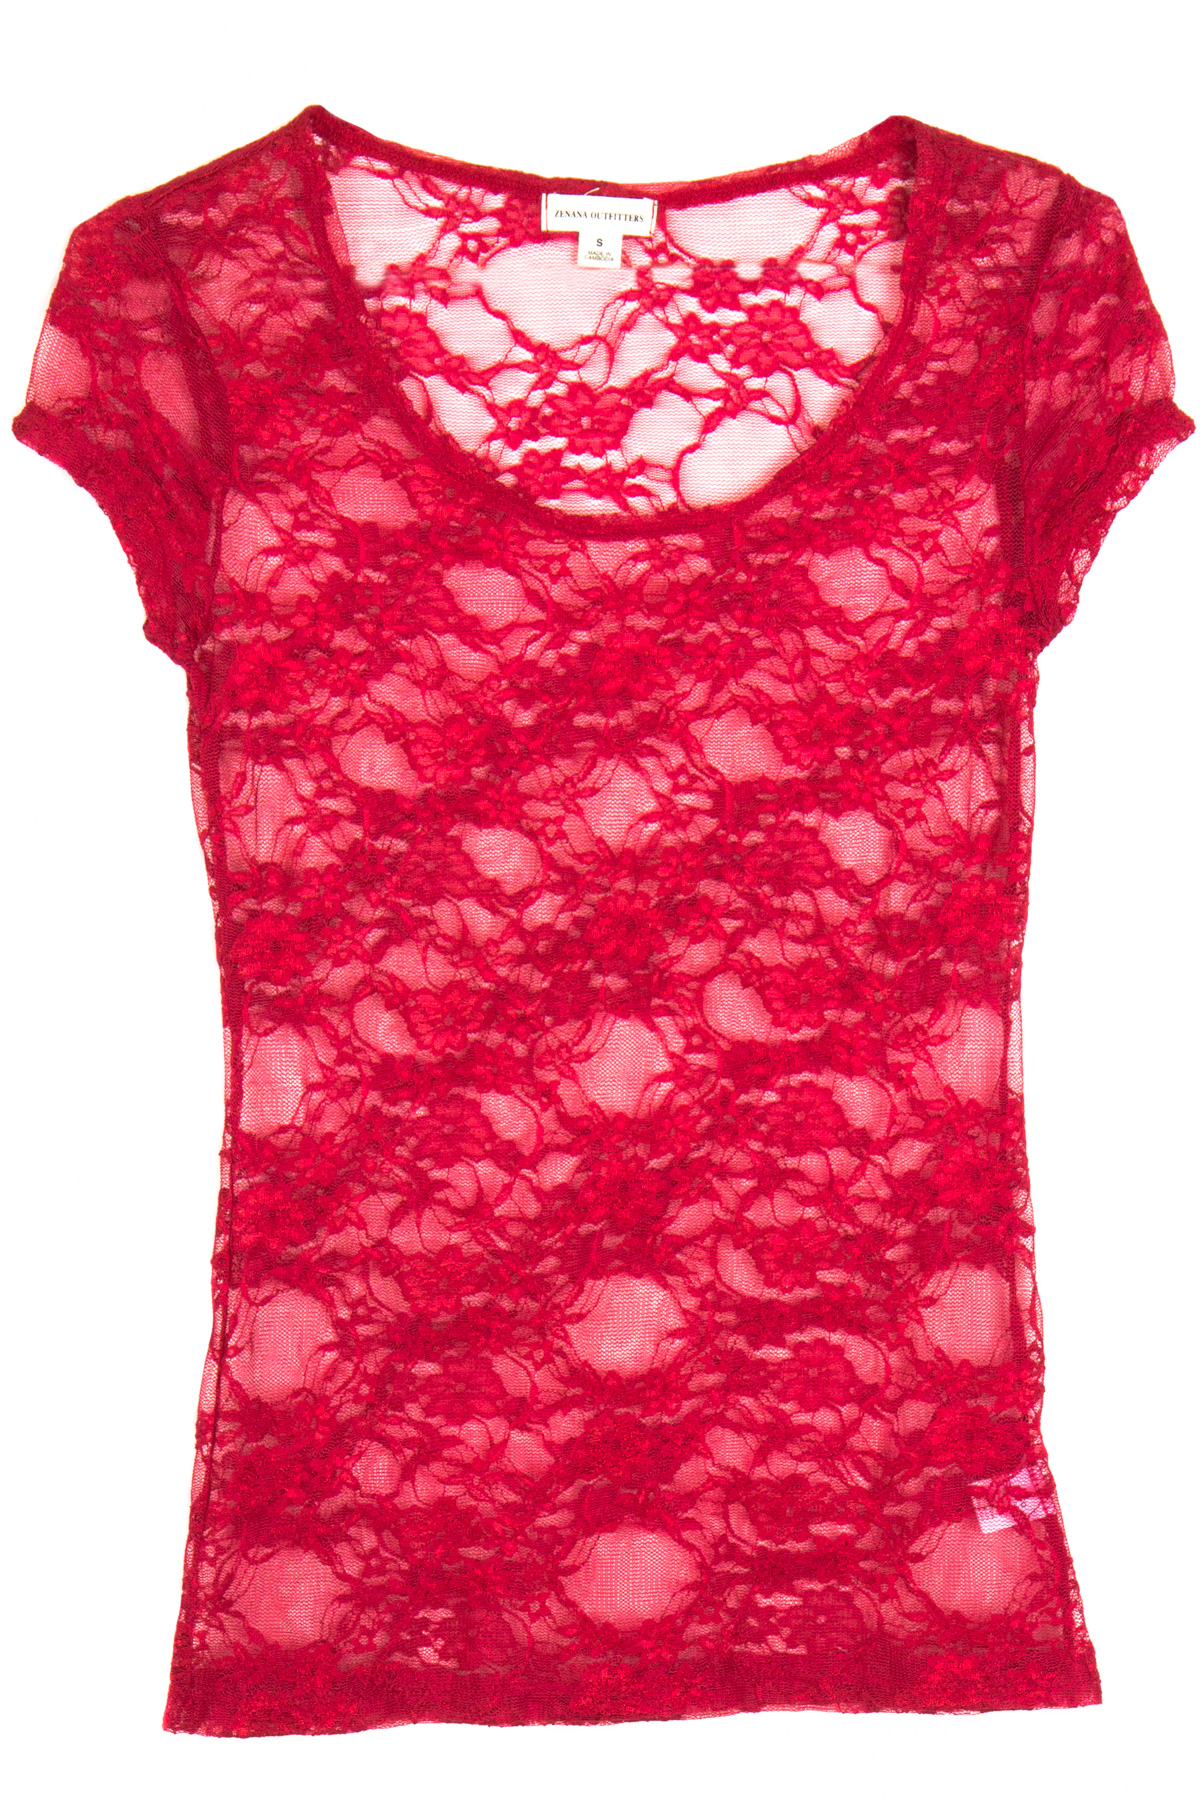 red floral lace short sleeve sheer top